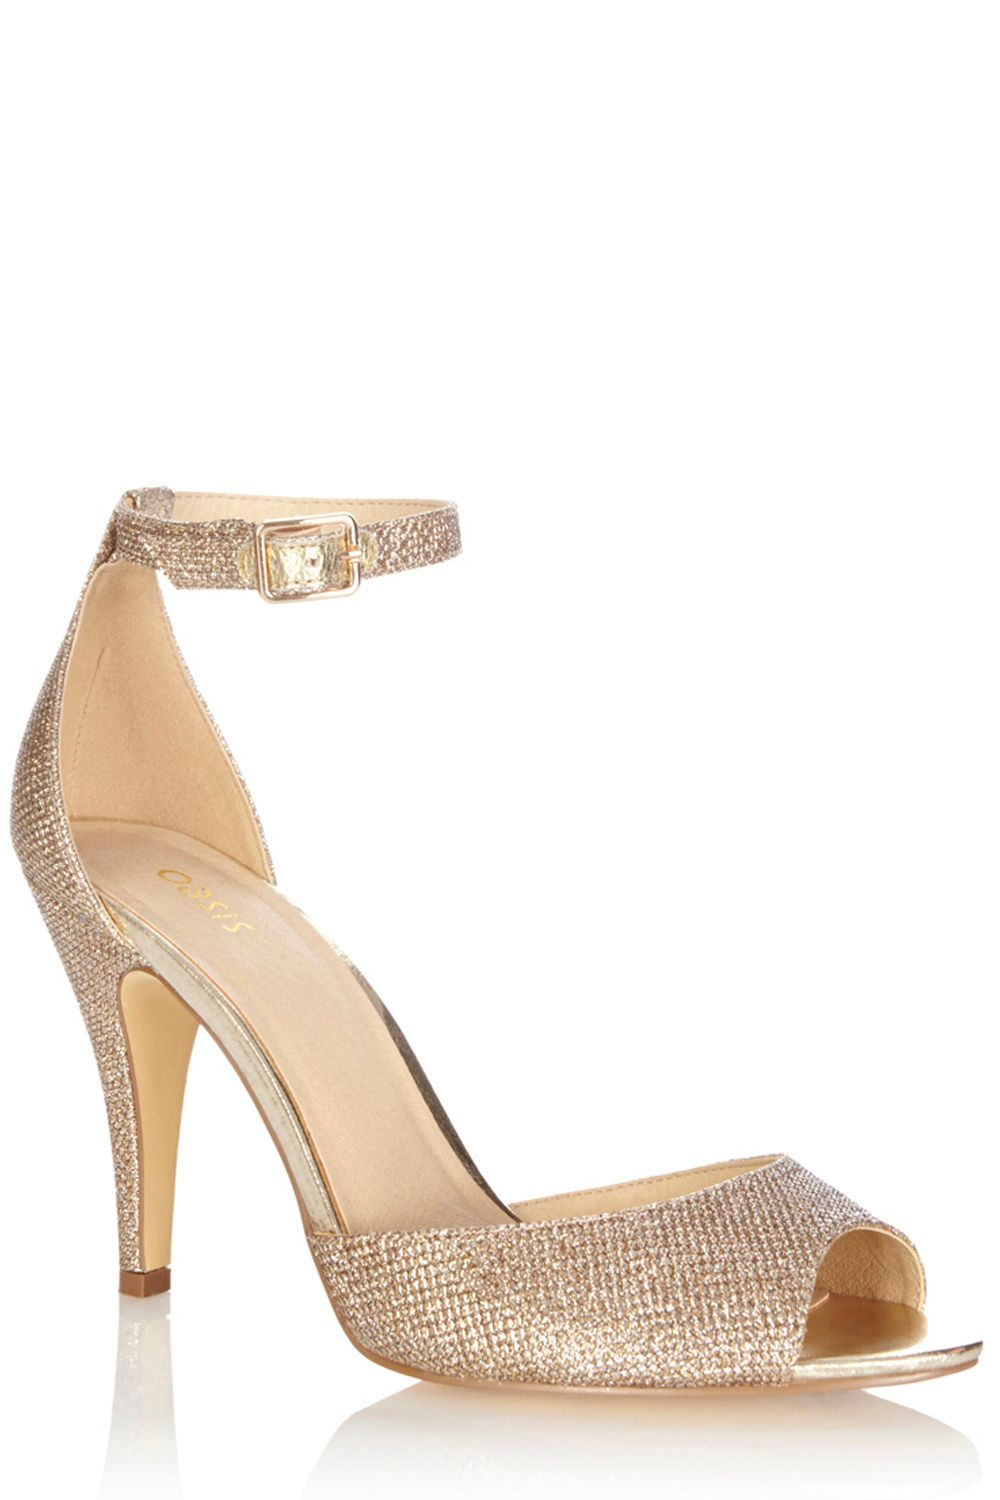 Chloe metallic sandals